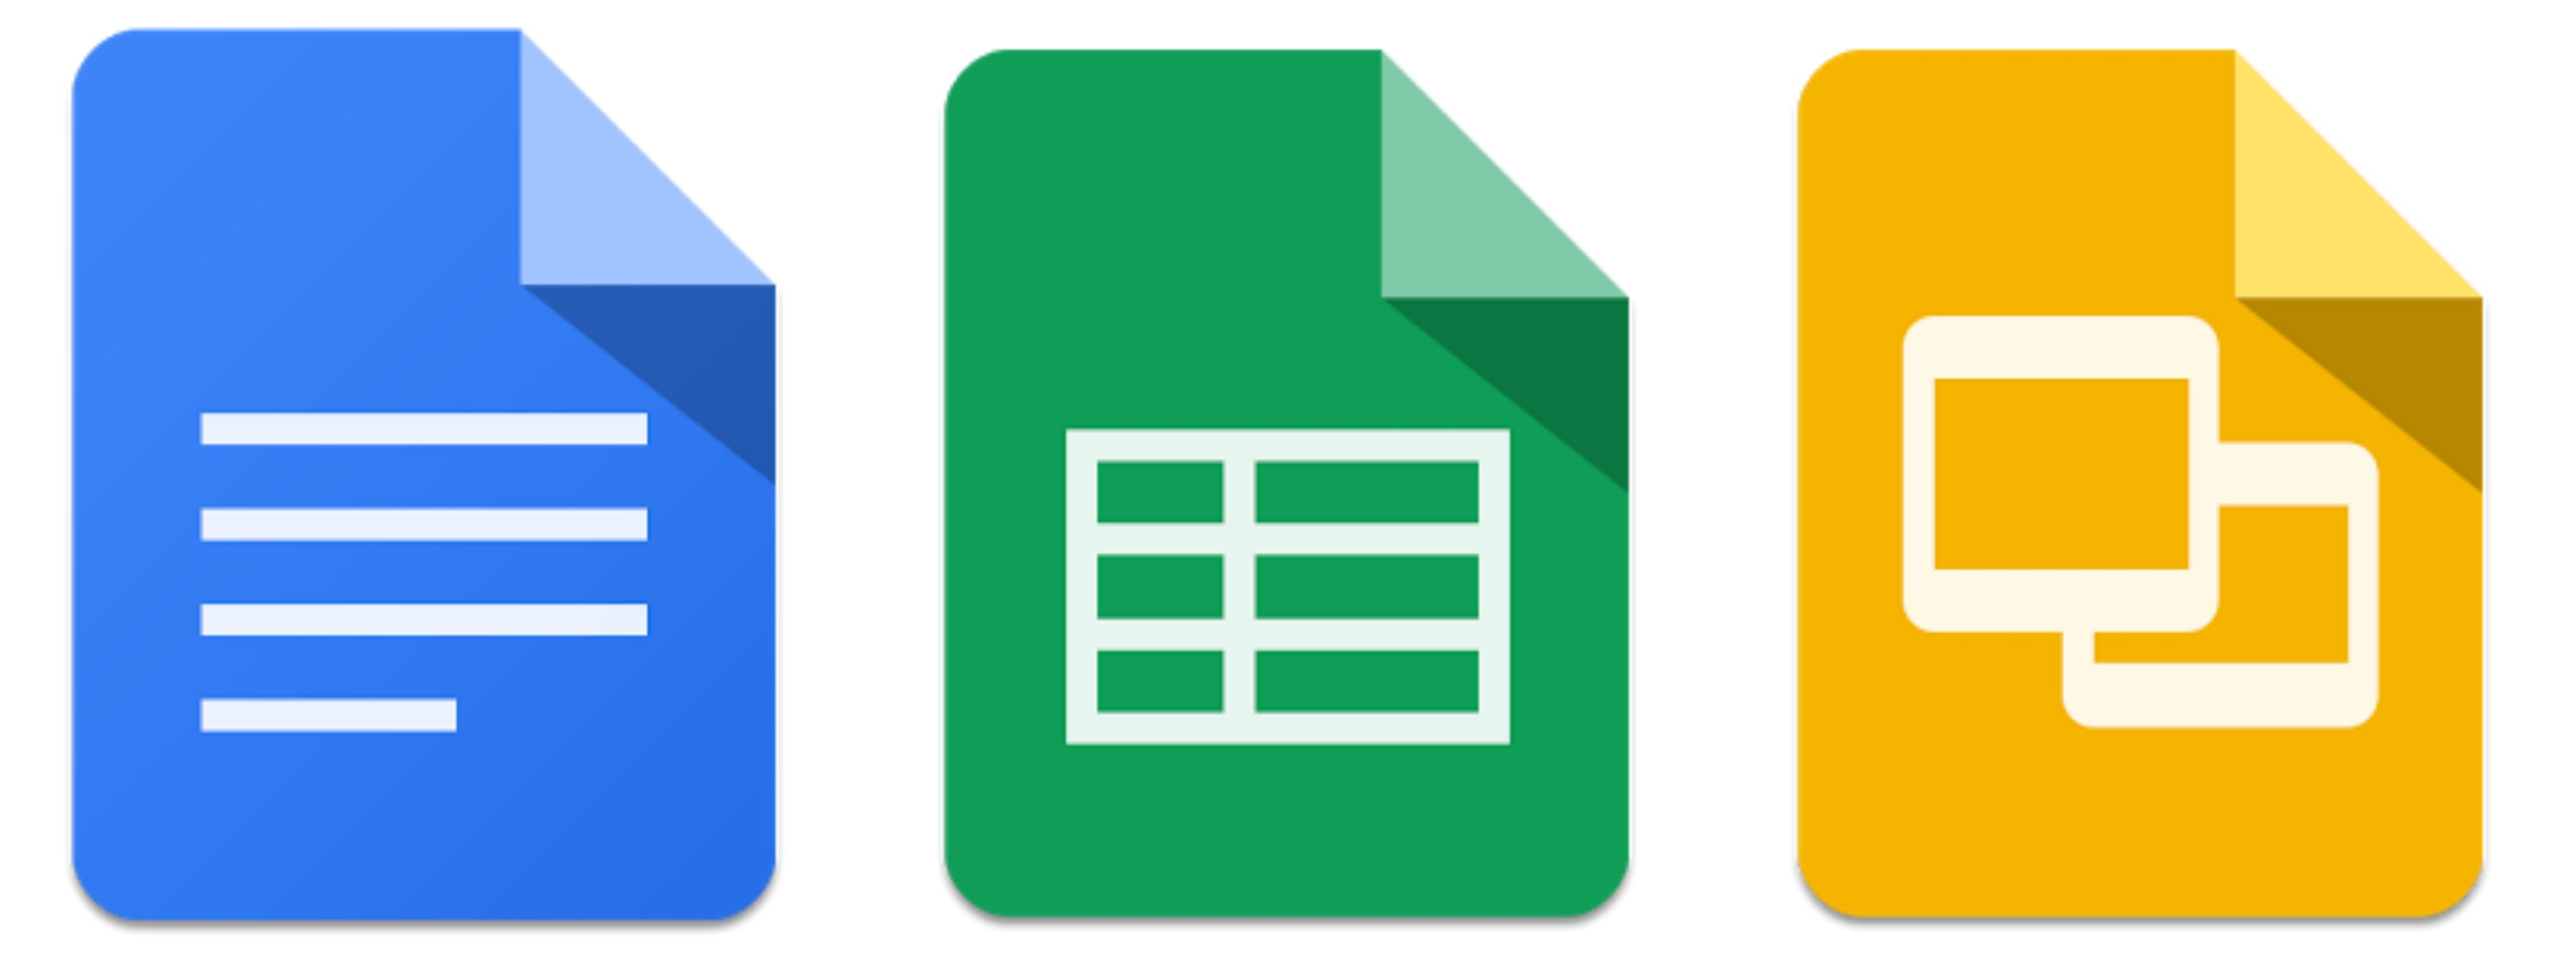 Google Docs, Sheets, Slides update brings useful new features